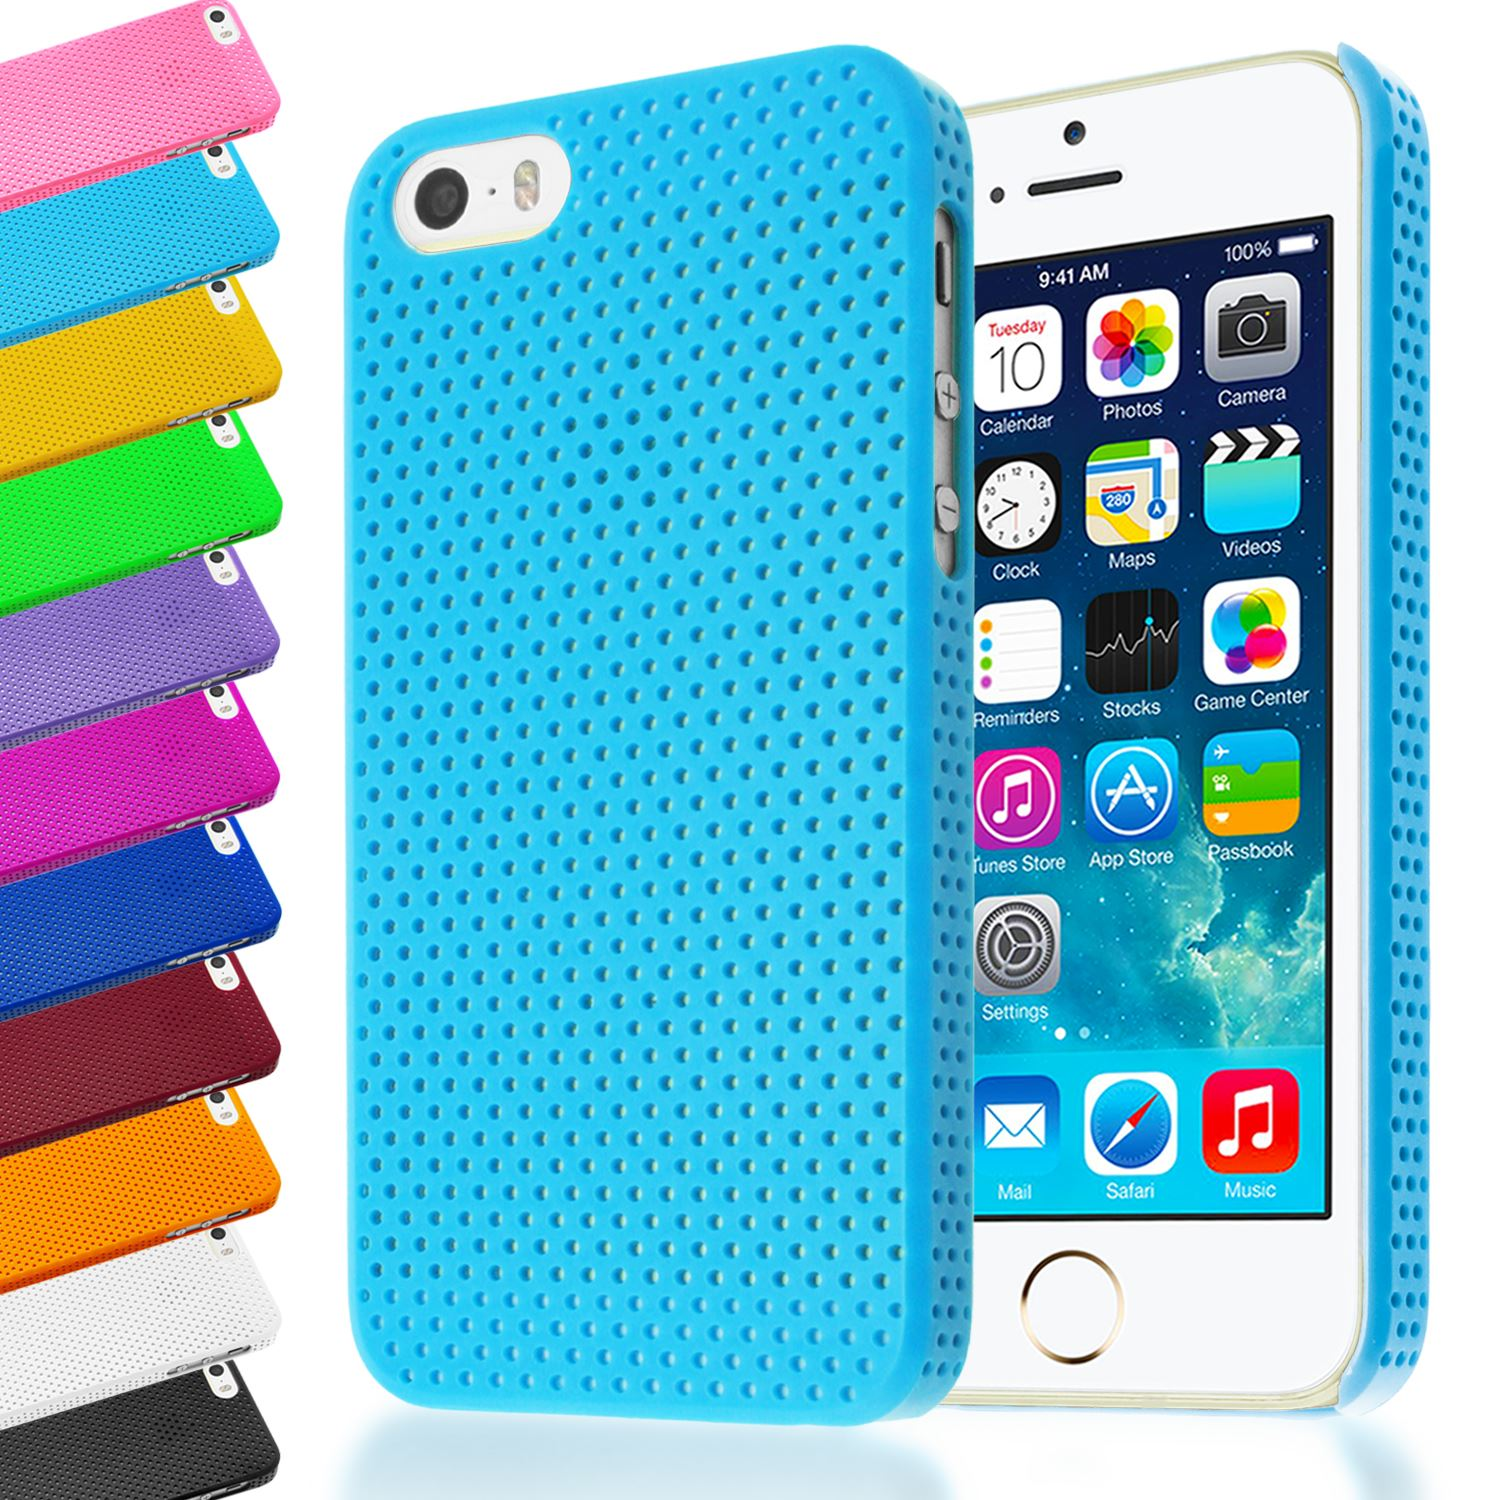 how to use flash on iphone mesh impact perforated back plastic cover for 6183